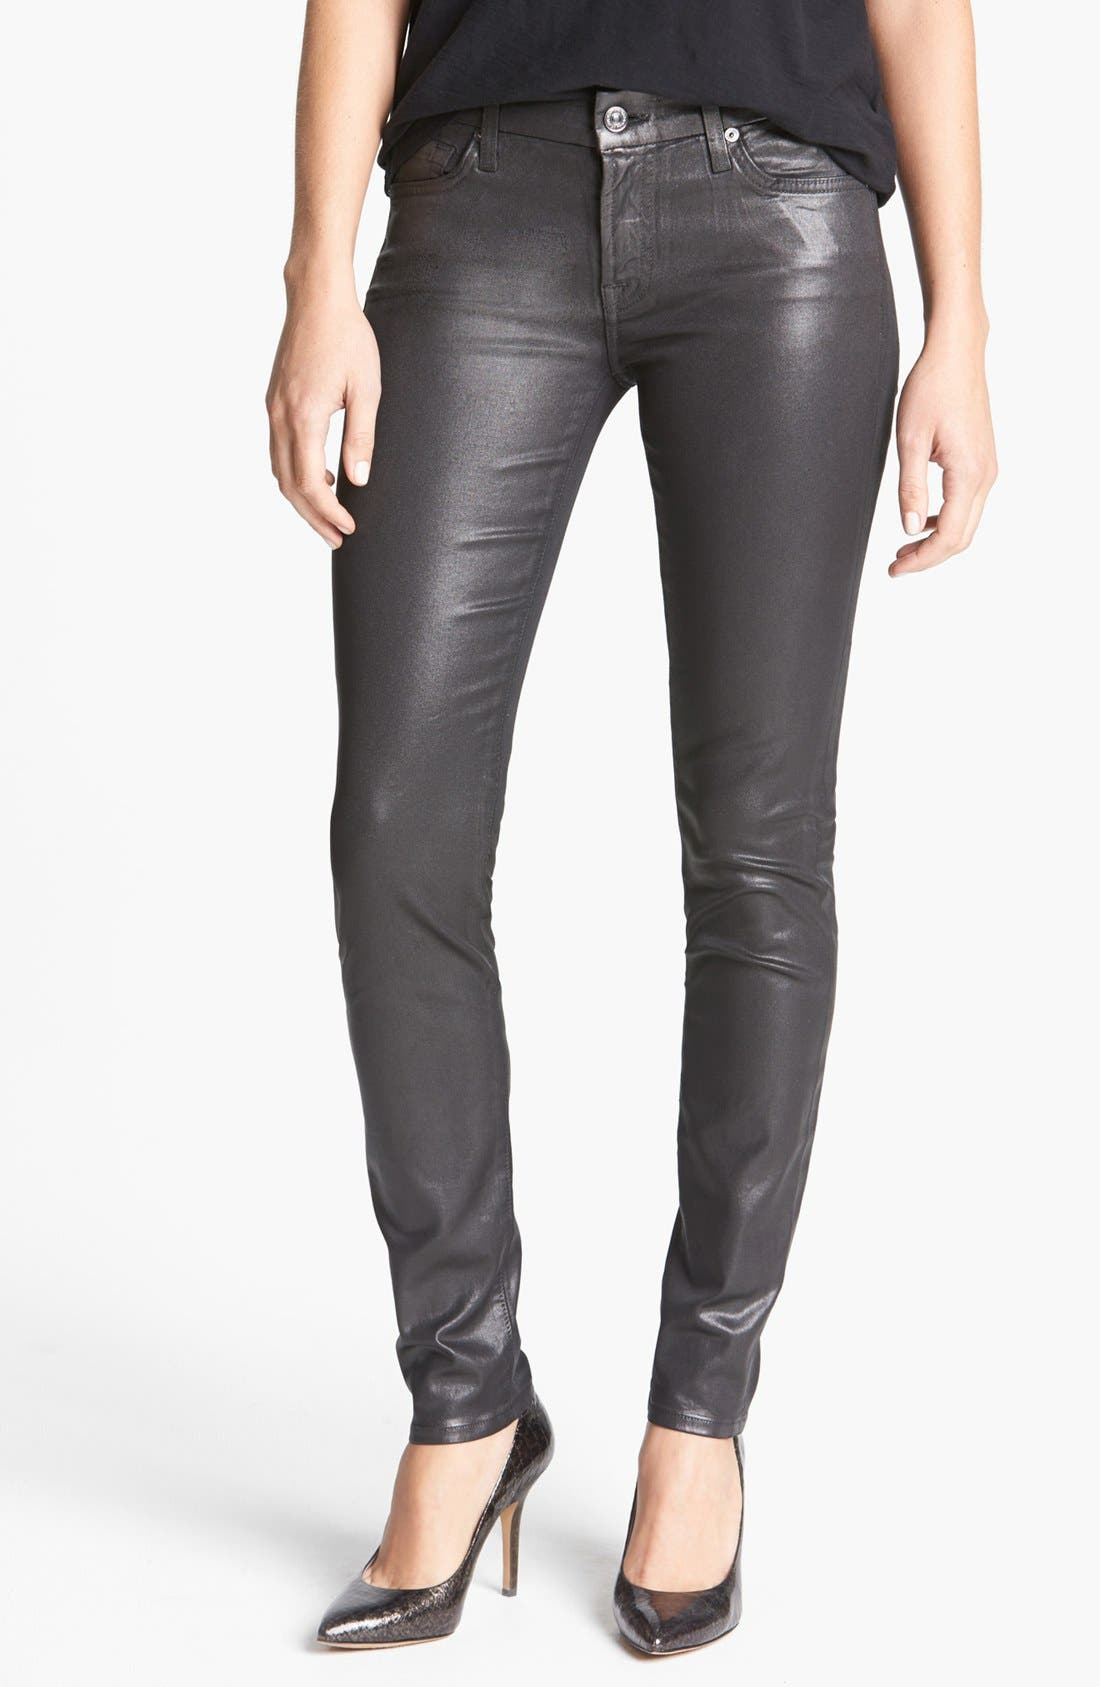 Alternate Image 1 Selected - 7 For All Mankind® 'Higher Gloss Gummy' Skinny Jeans (Armor Grey)